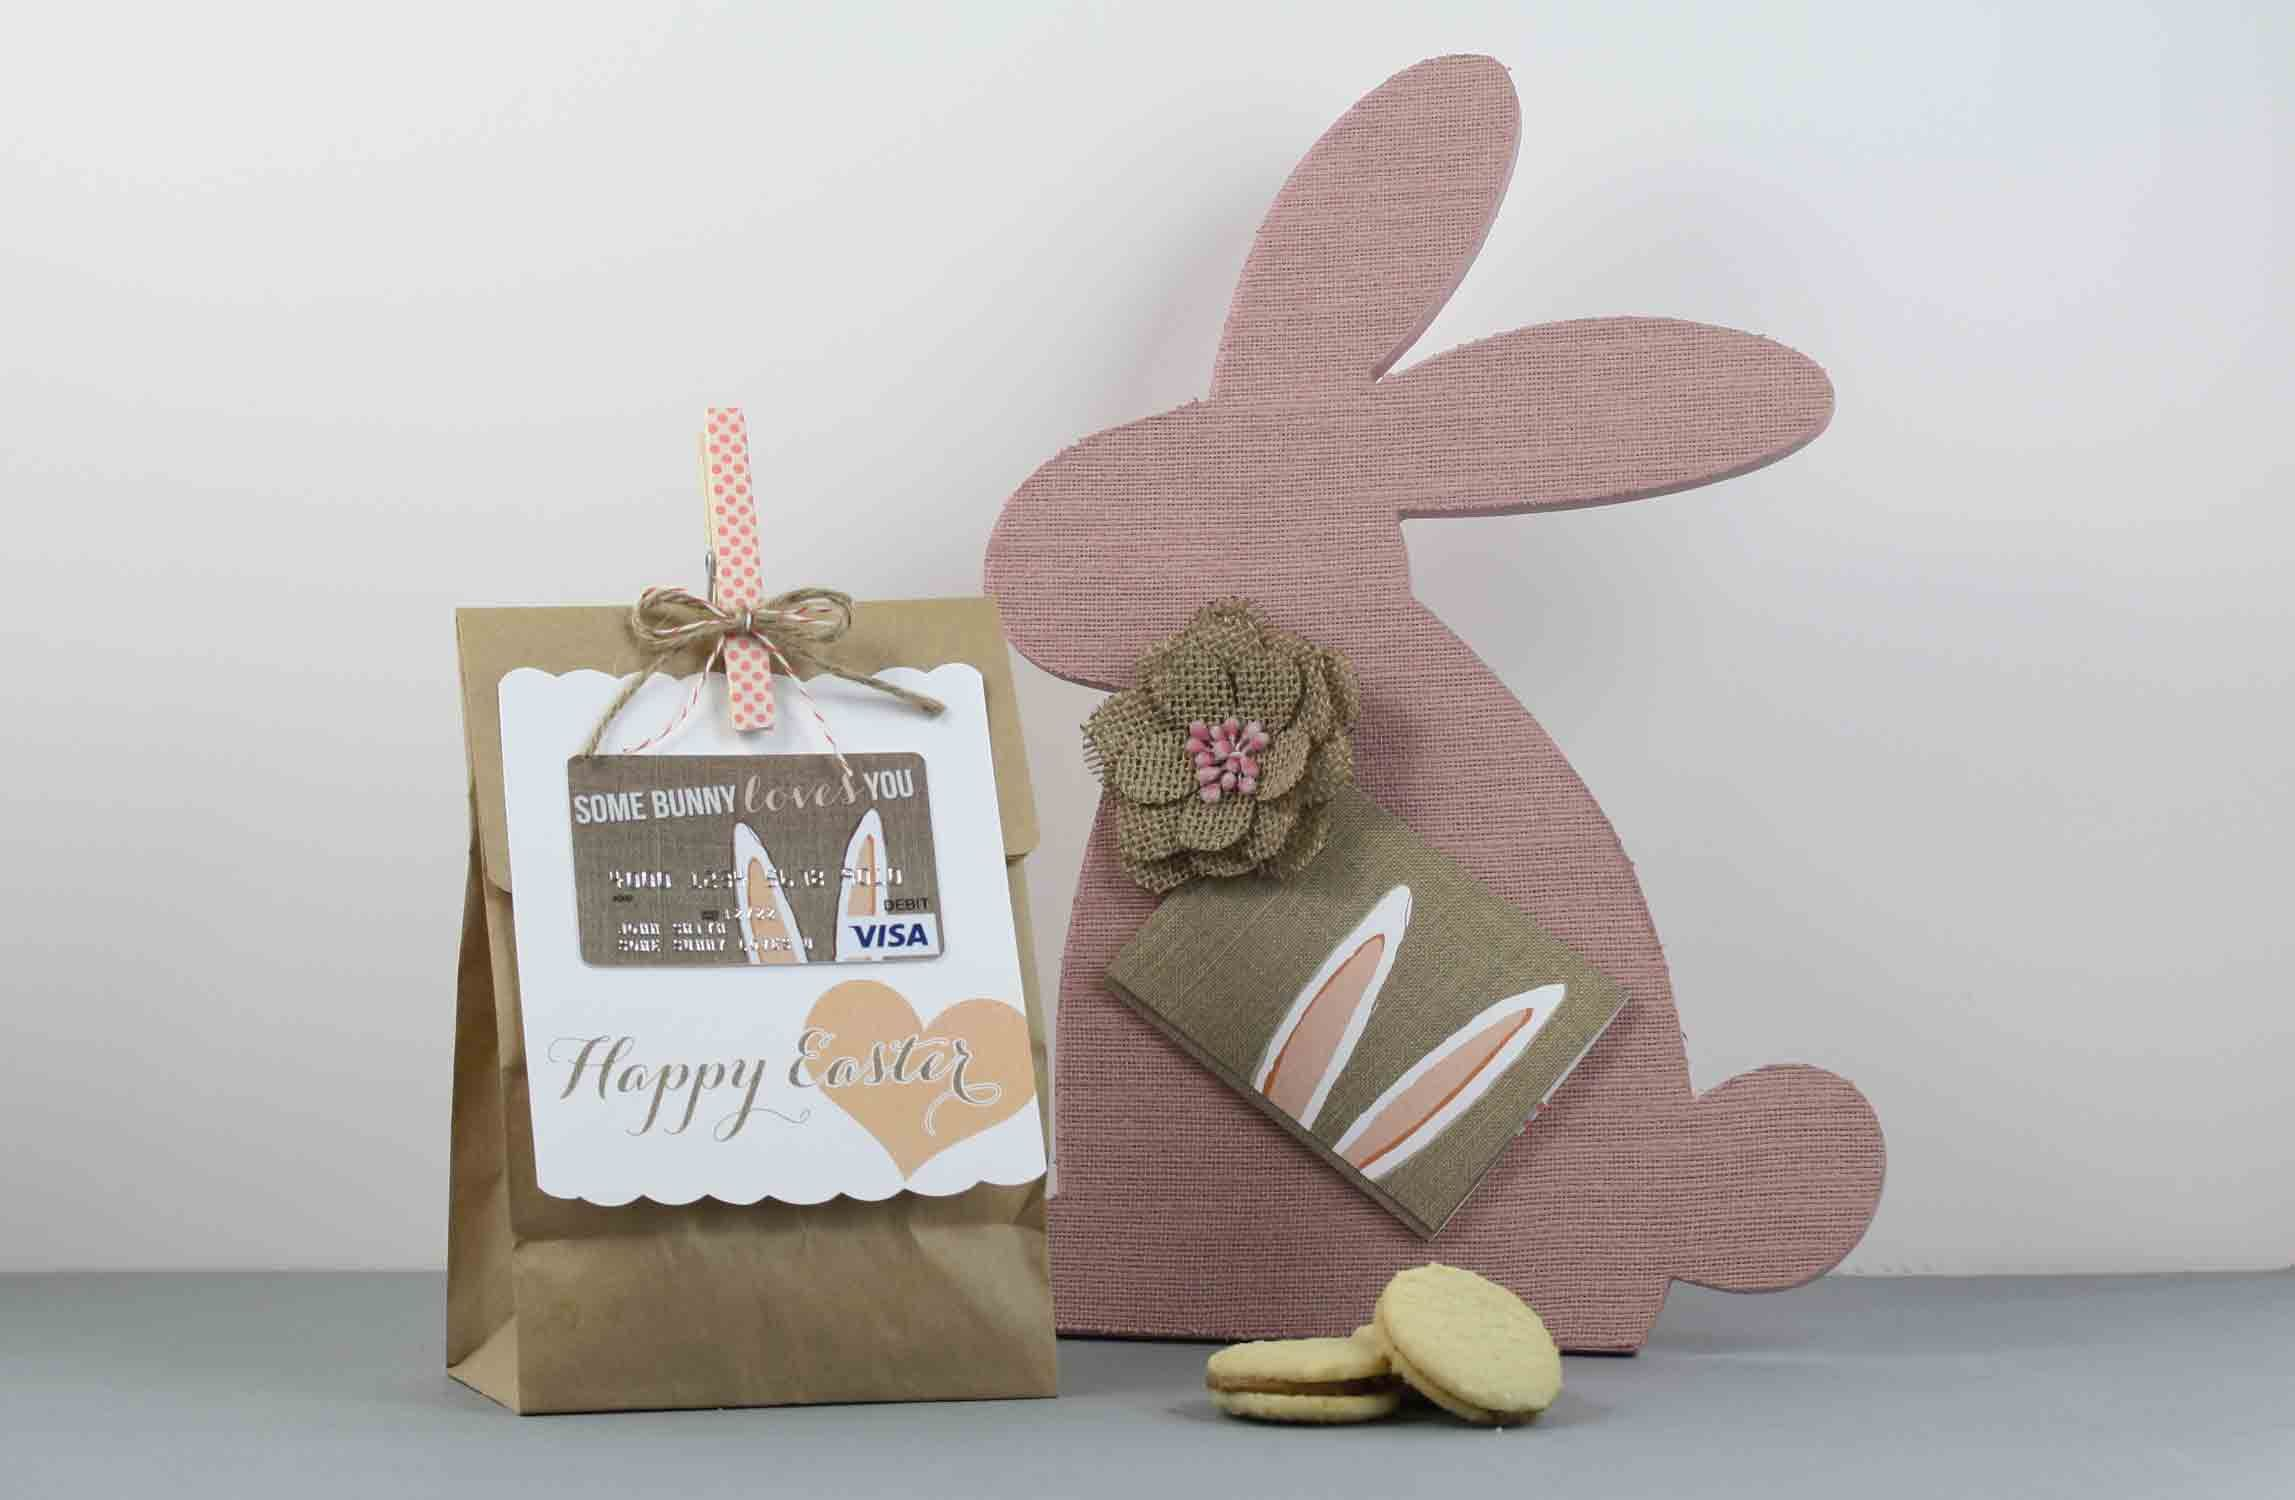 Free easter burlap bunny diy printable gift card holder great free easter burlap bunny diy printable gift card holder great easter gift for friends and negle Images